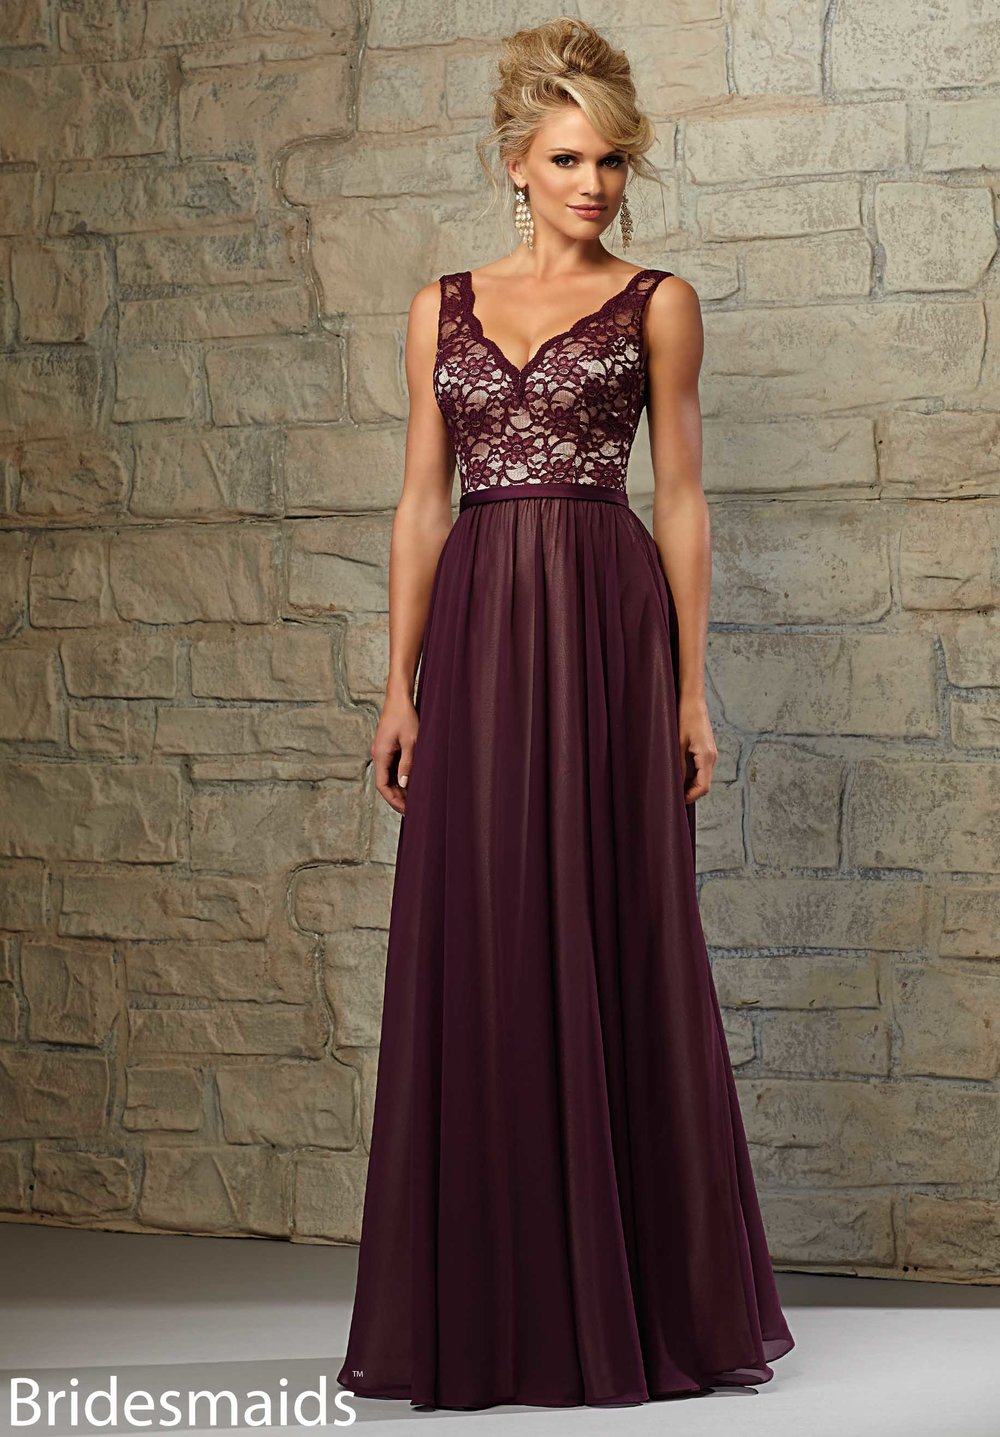 Madeline Garner Lace Bodice Bridesmaids Dress